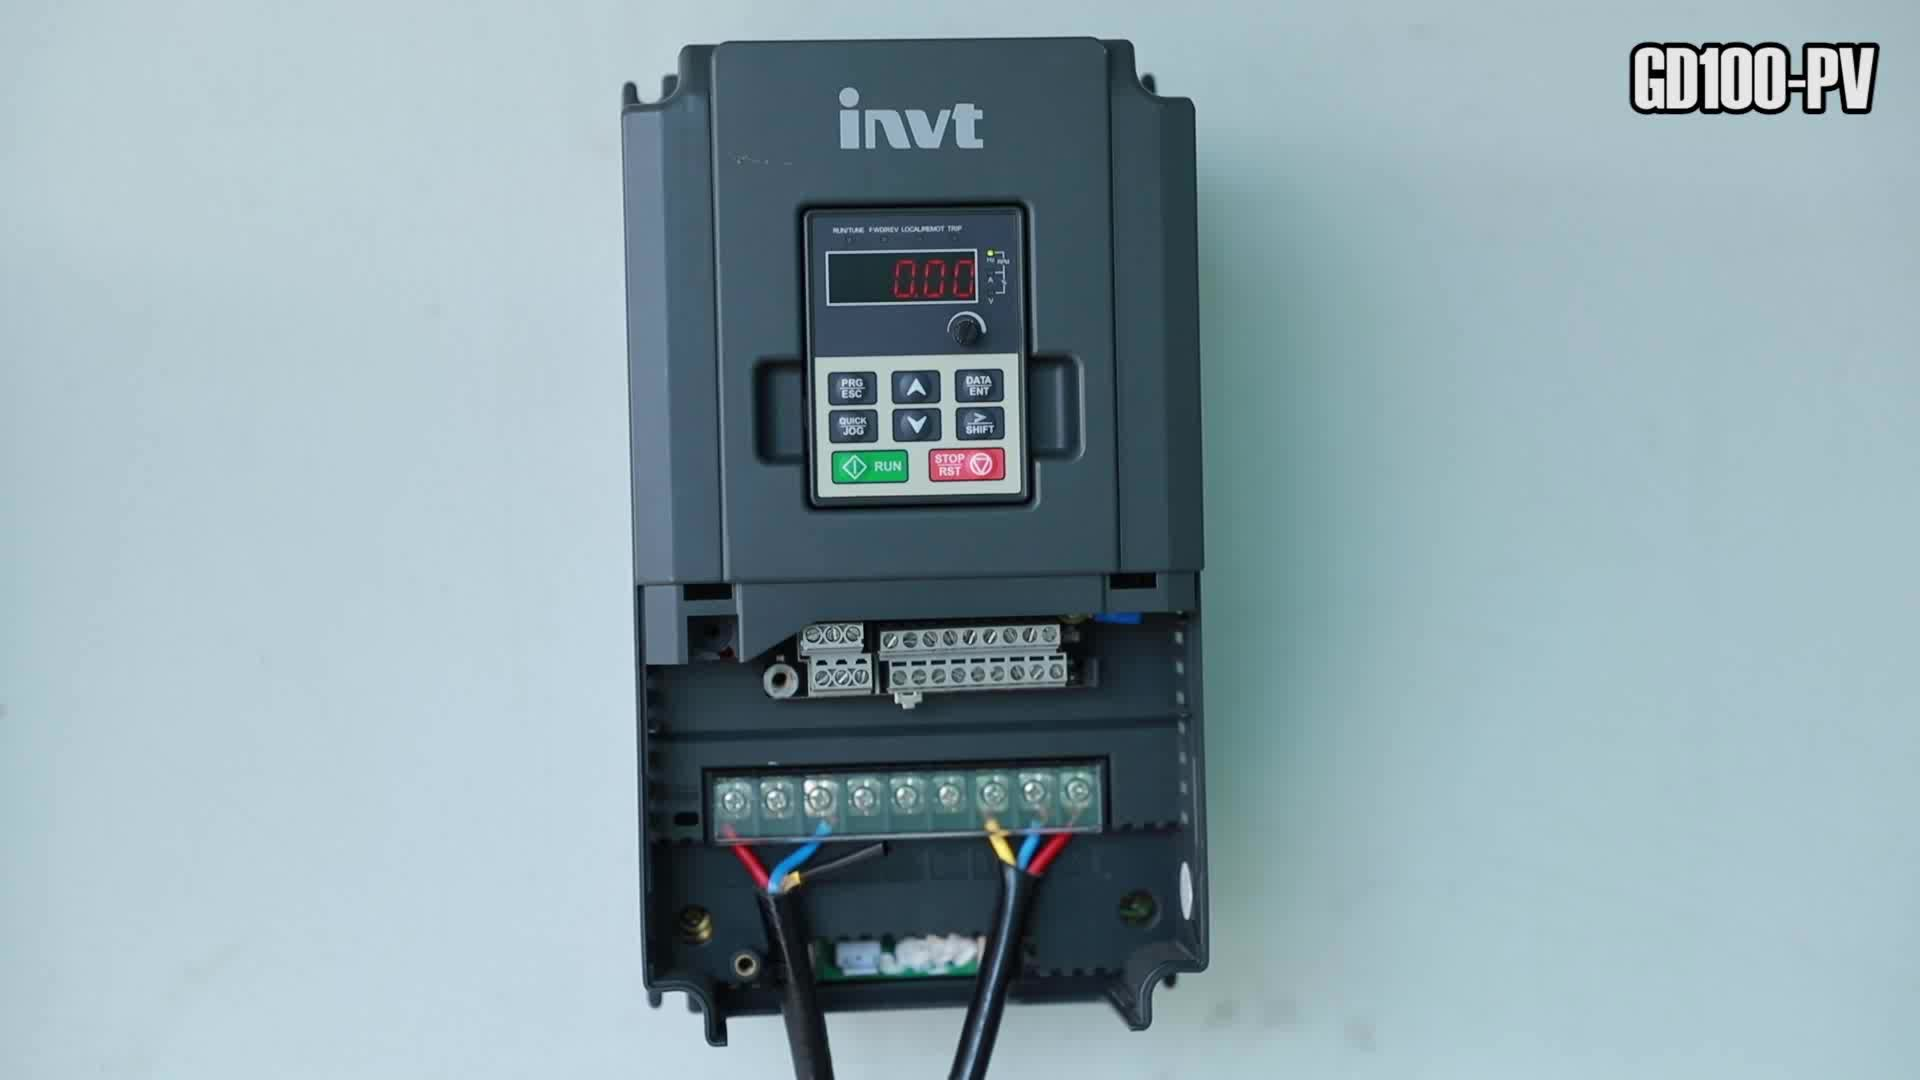 New Invt Gd100 Pv Ac 3kw 220v Solar Pump Inverter With